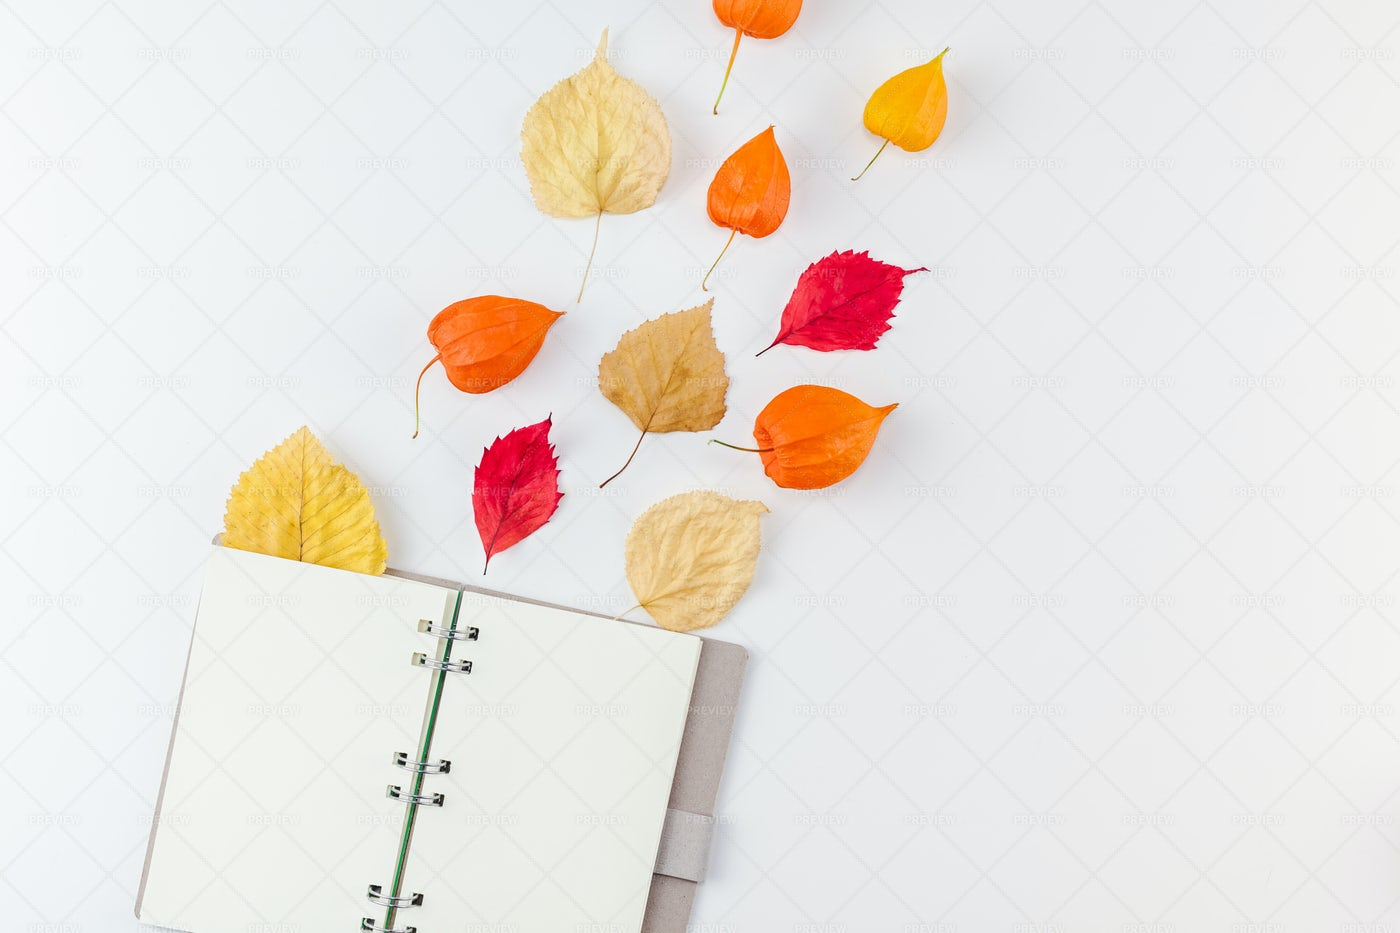 Notebook With Dried Flowers: Stock Photos